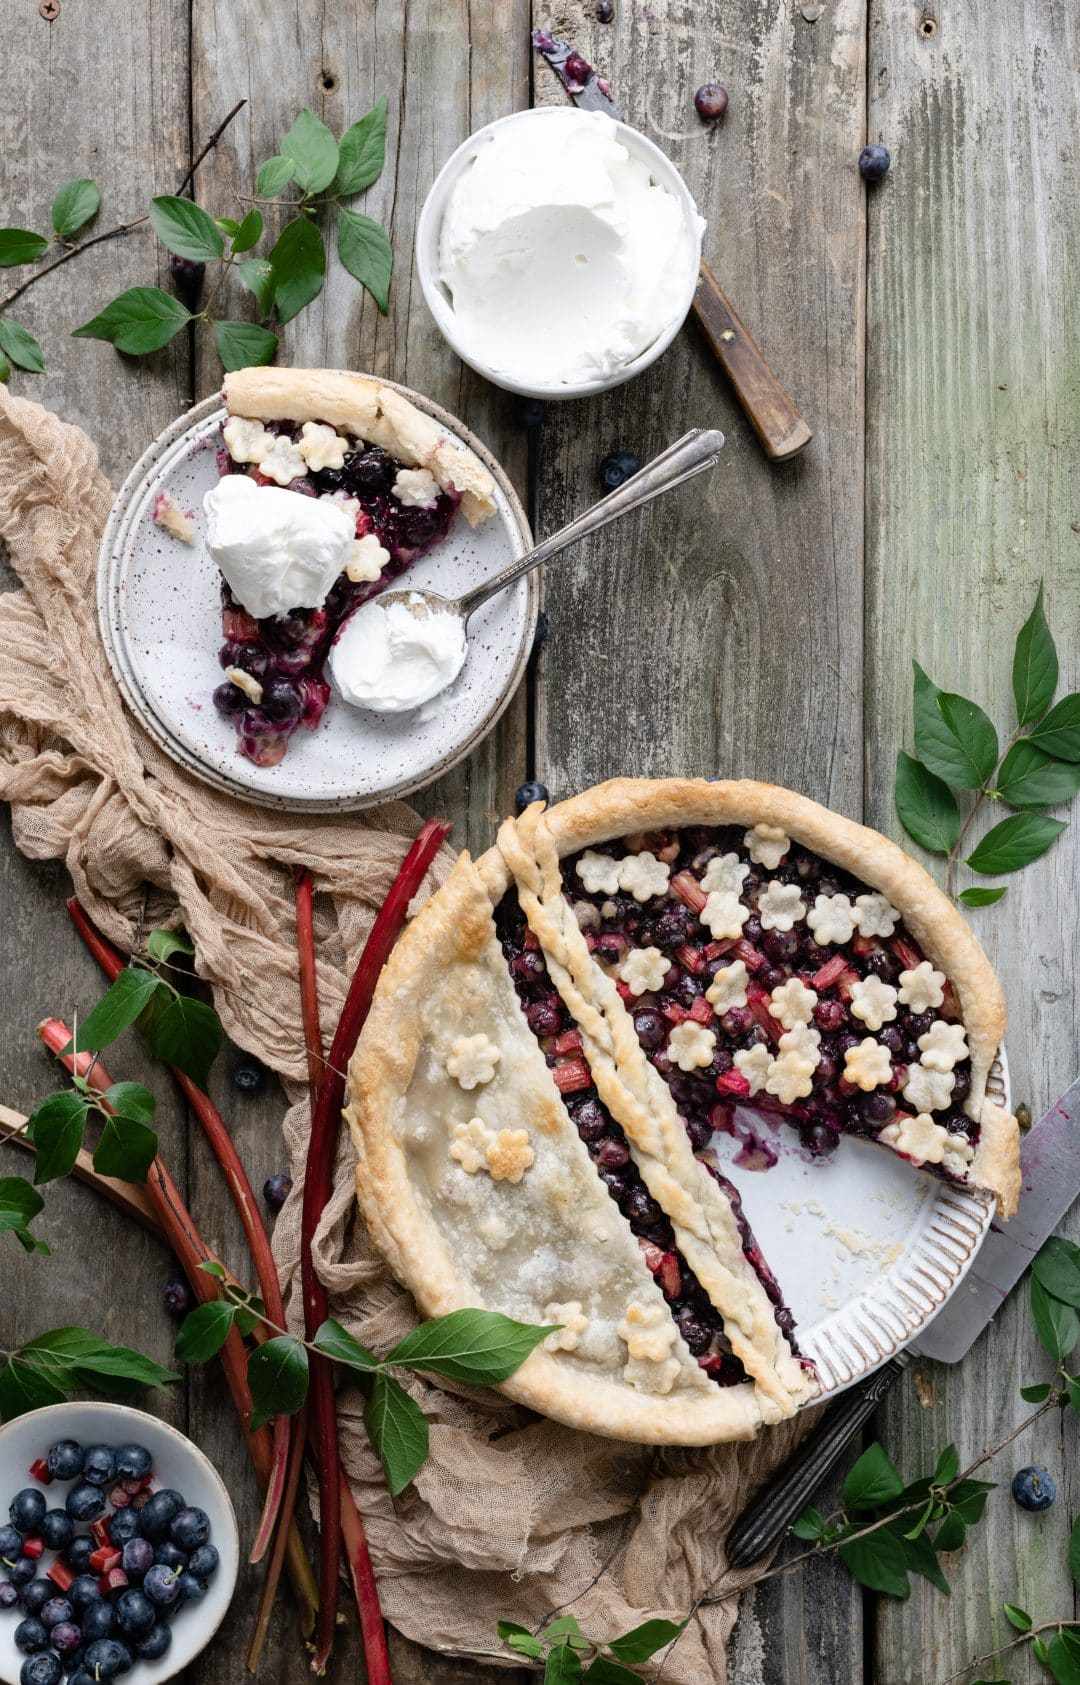 Baked Blueberry Rhubarb Pie with Whipped Cream